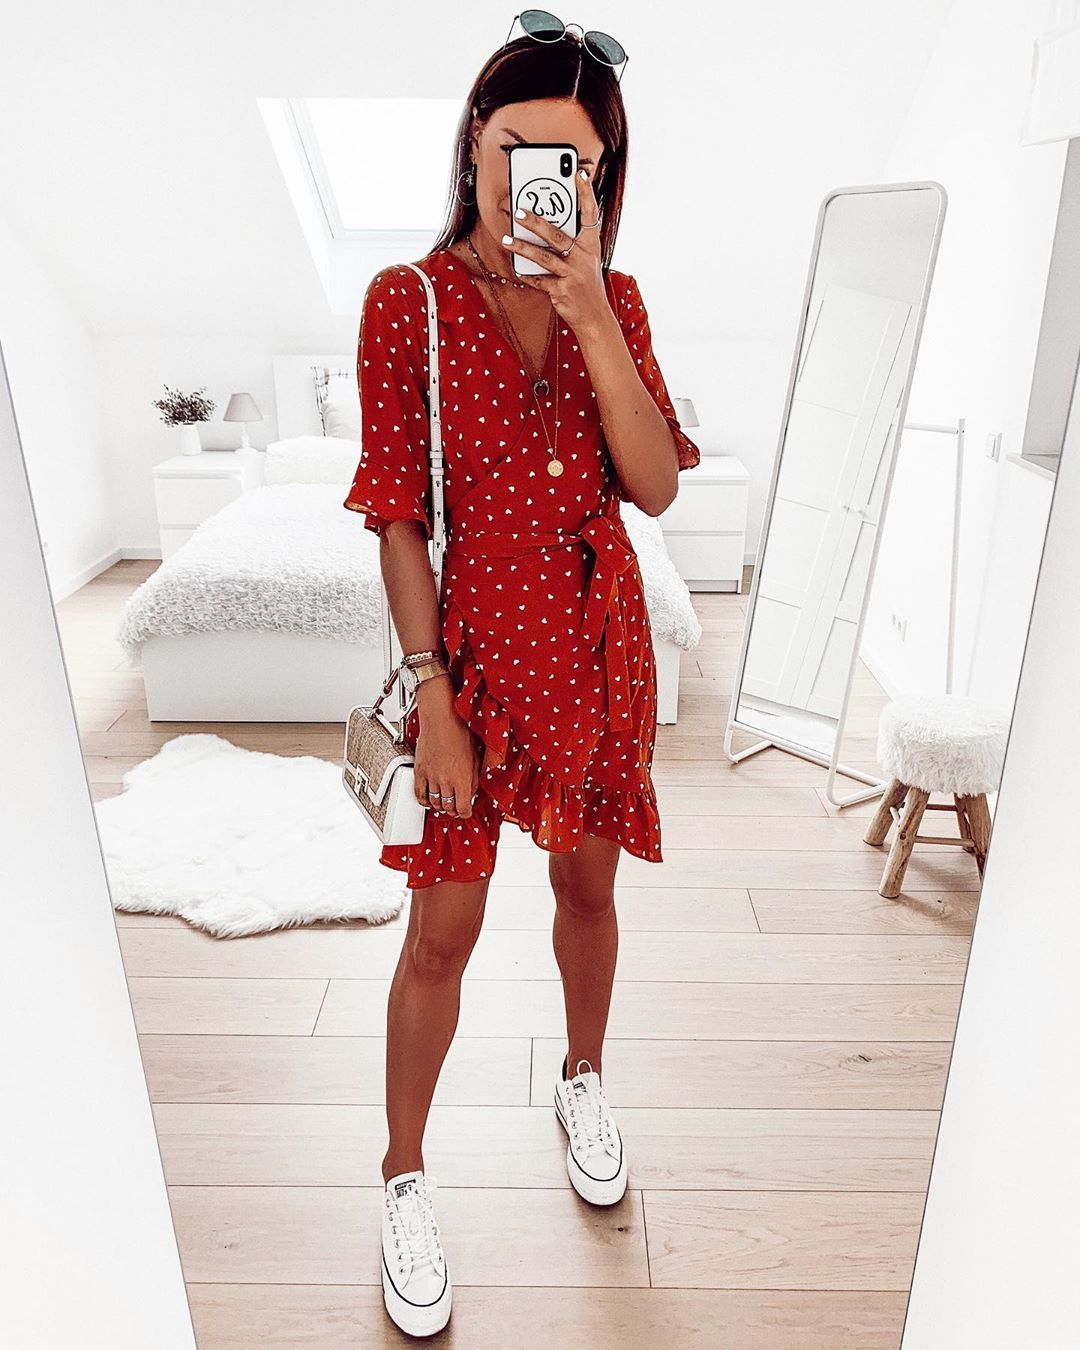 "Photo of FASHIONPUGLADY BY JAQUELINE on Instagram: ""#OOTN ❤️A nice Sunday evening to you 💋 # ootd #outfit #outfitinspo #dailylook #wiwt #dress #fashionhaul #fashioninspo # dailylook…"""